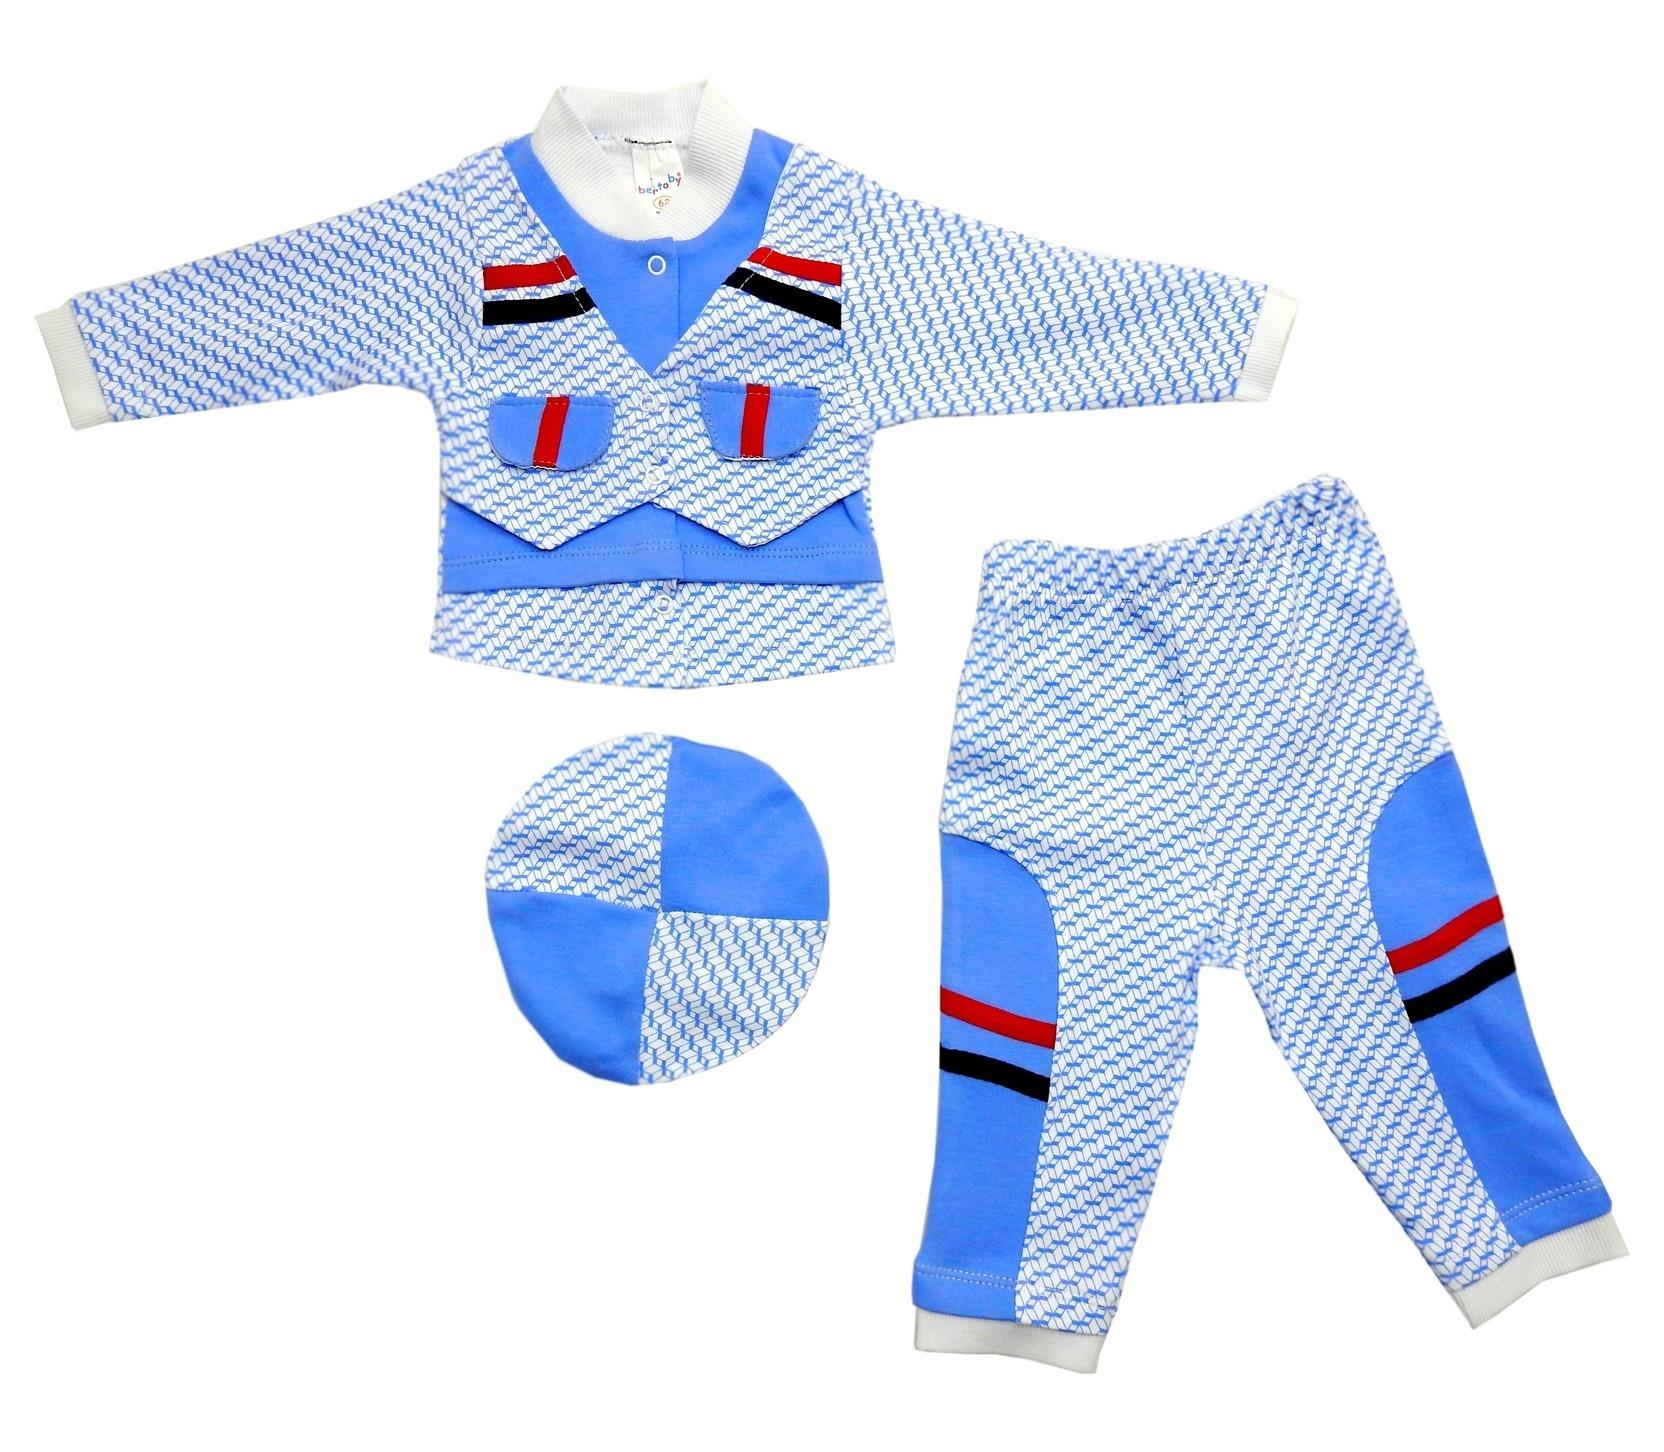 DECORATIVE BLAZER TRIPLE SET FOR BOY (6-9 MONTH)